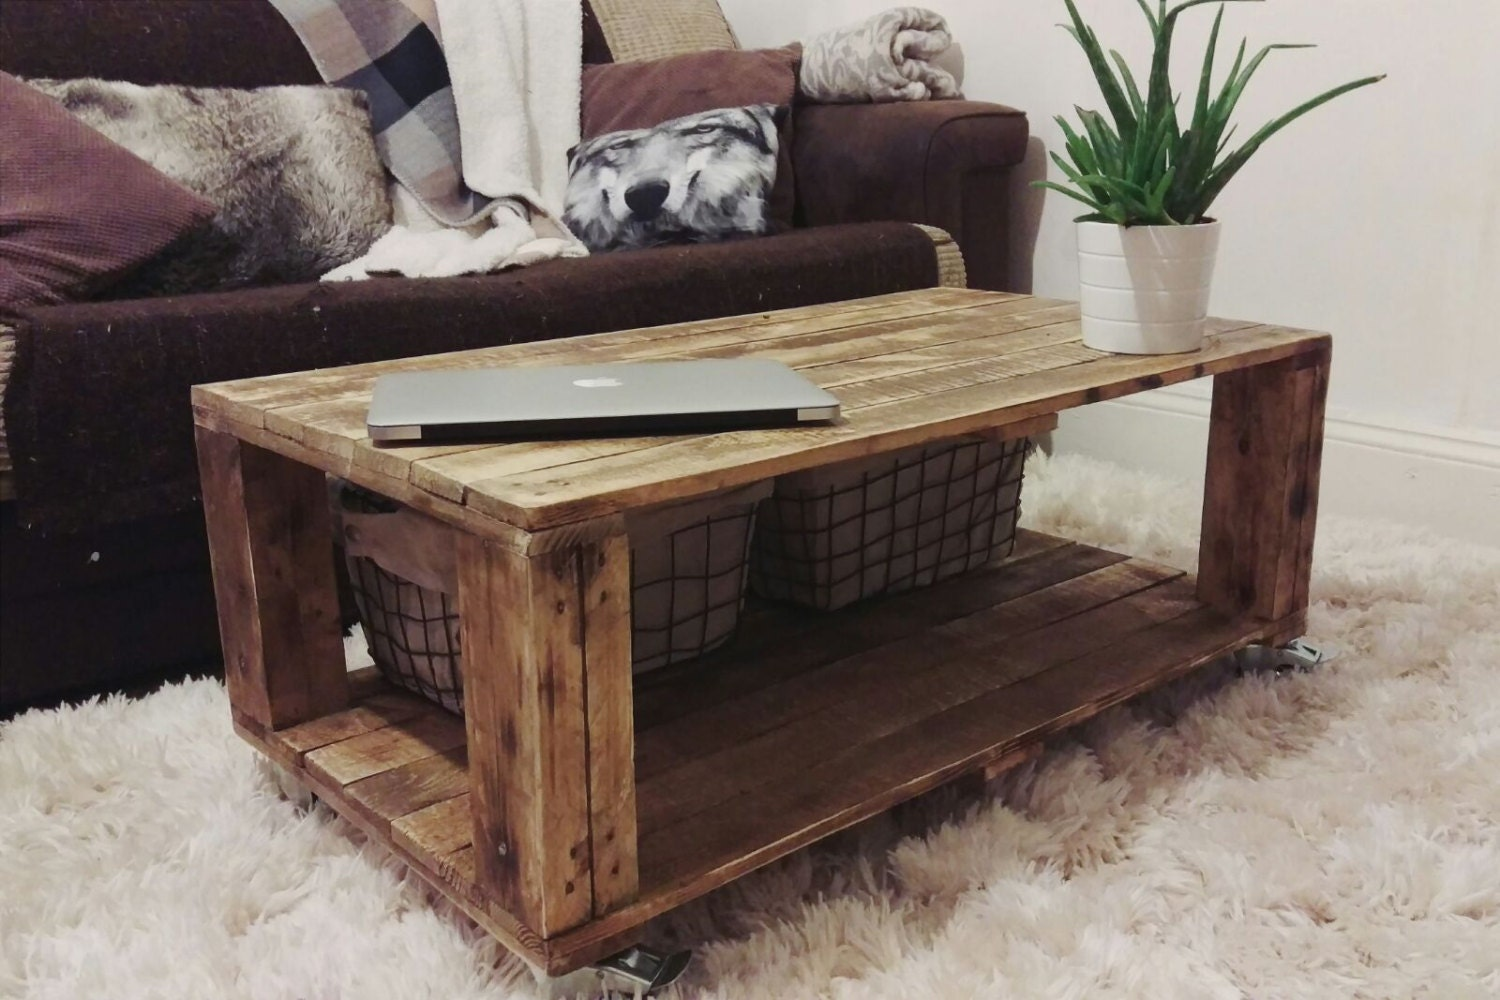 Reclaimed industrial wood coffee table ahvima in roast coffee zoom geotapseo Image collections